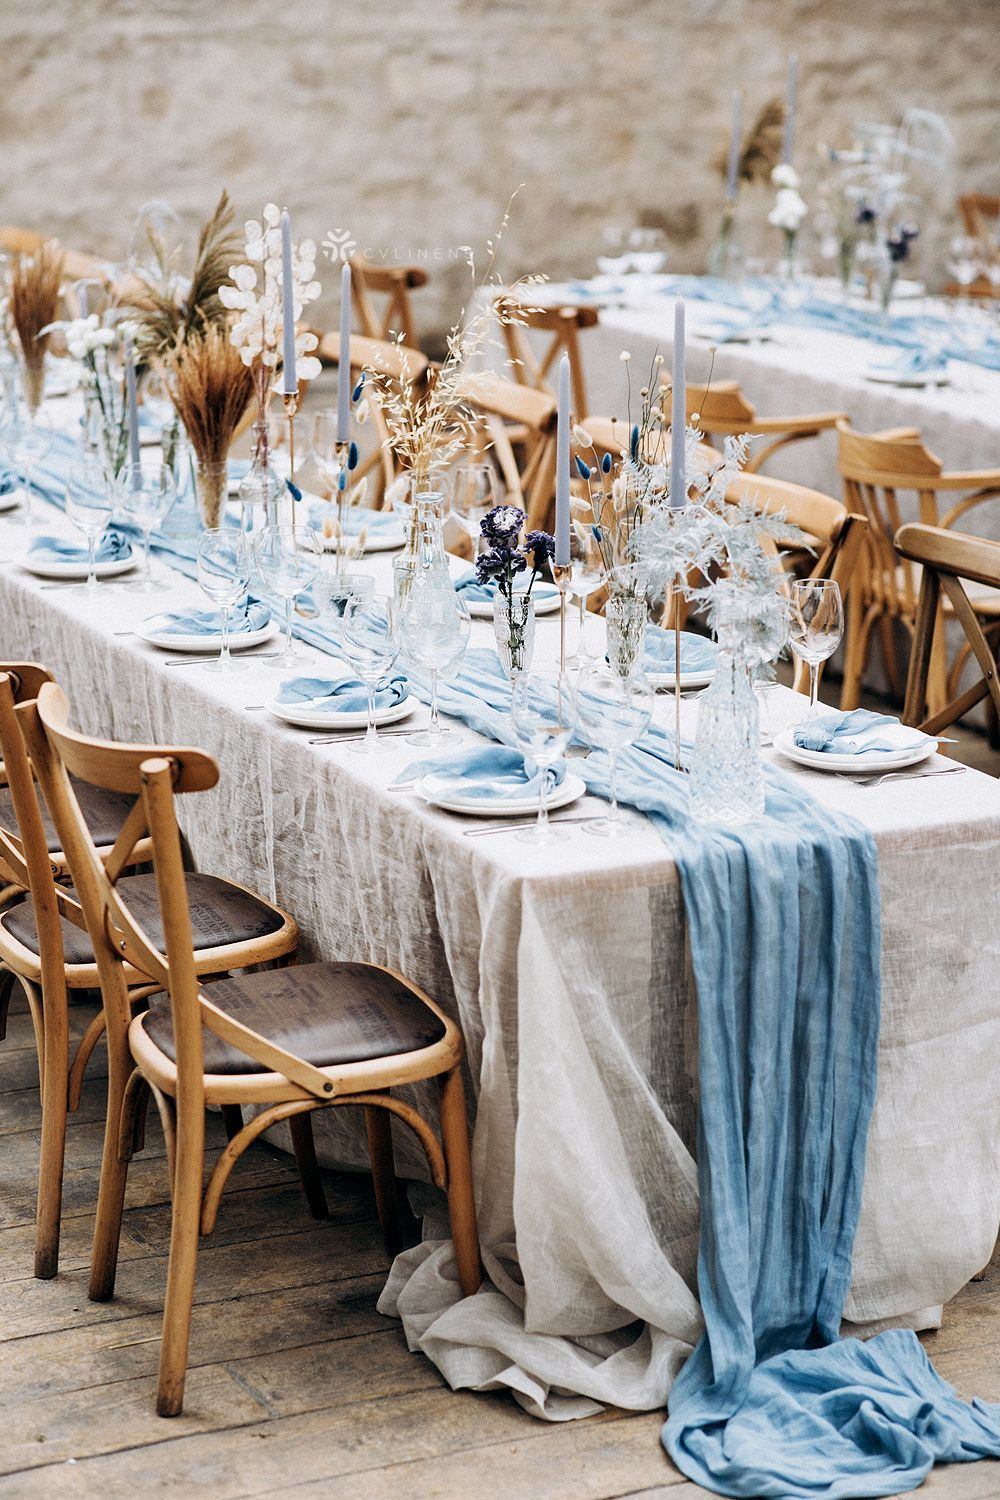 Beautiful Outdoor Dusty Blue Wedding Reception Boho Theme With Pampas Grass Centerpieces In 2021 Blue Wedding Receptions Baby Blue Weddings Blue Fall Wedding